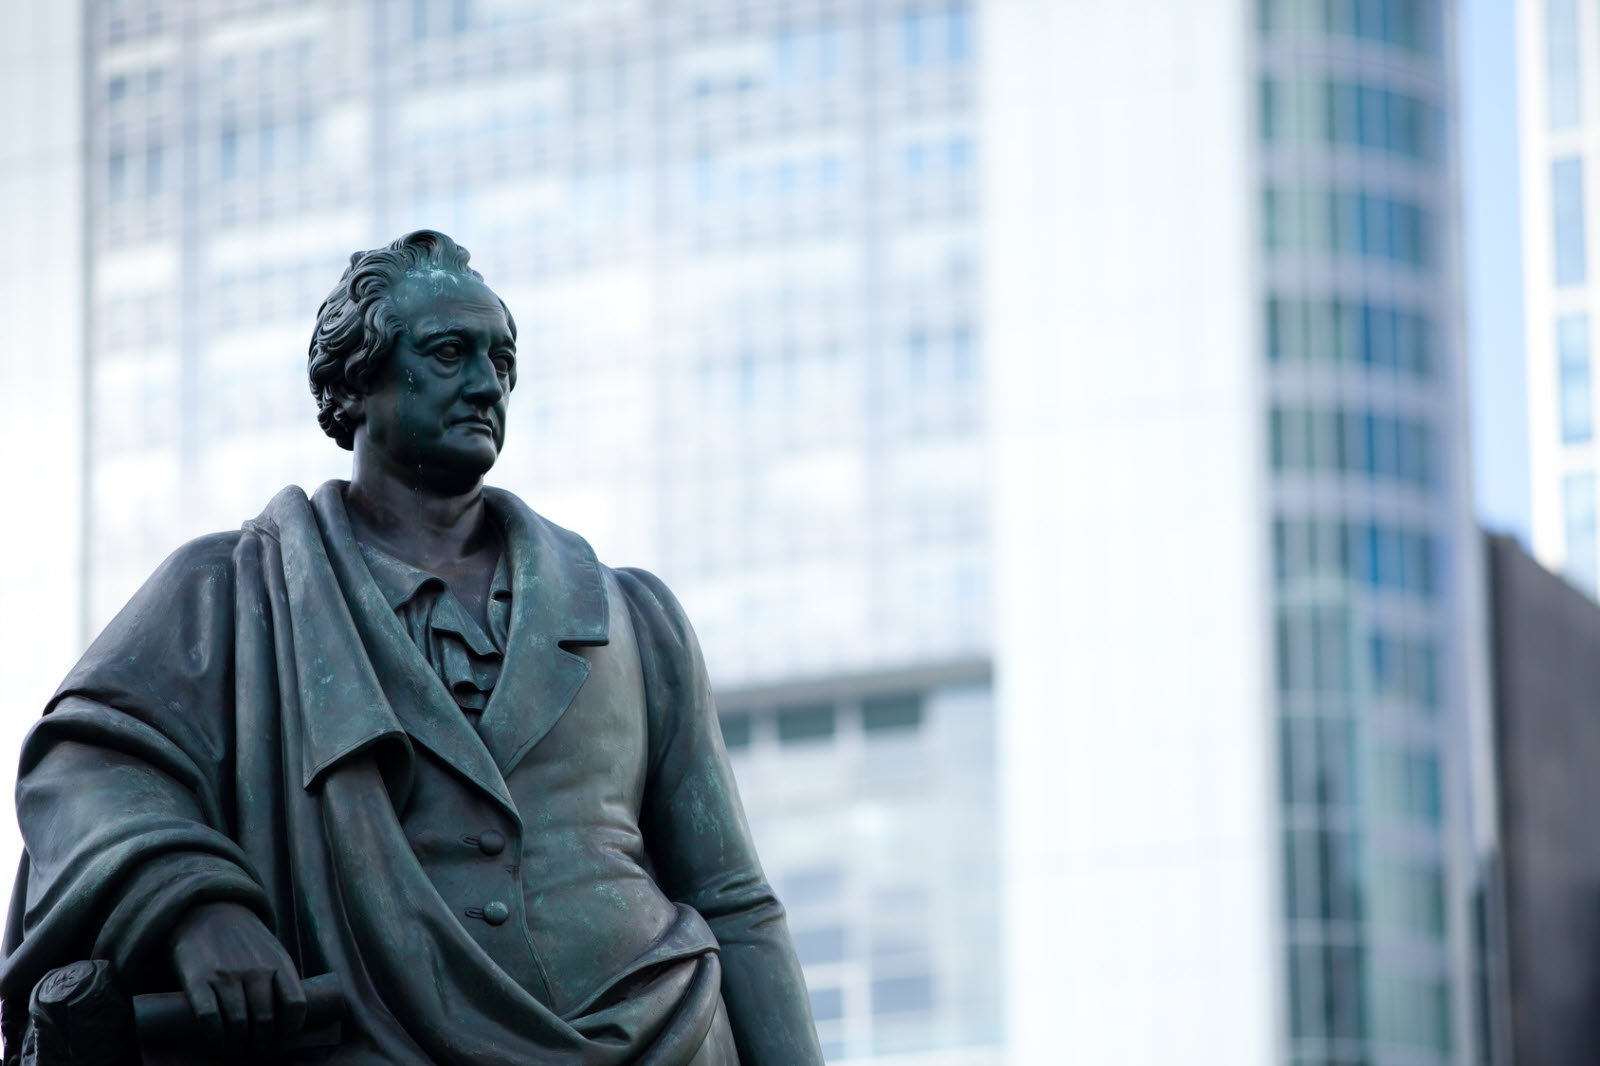 Goethe statue at Goetheplatz in Frankfurt with skyscraper